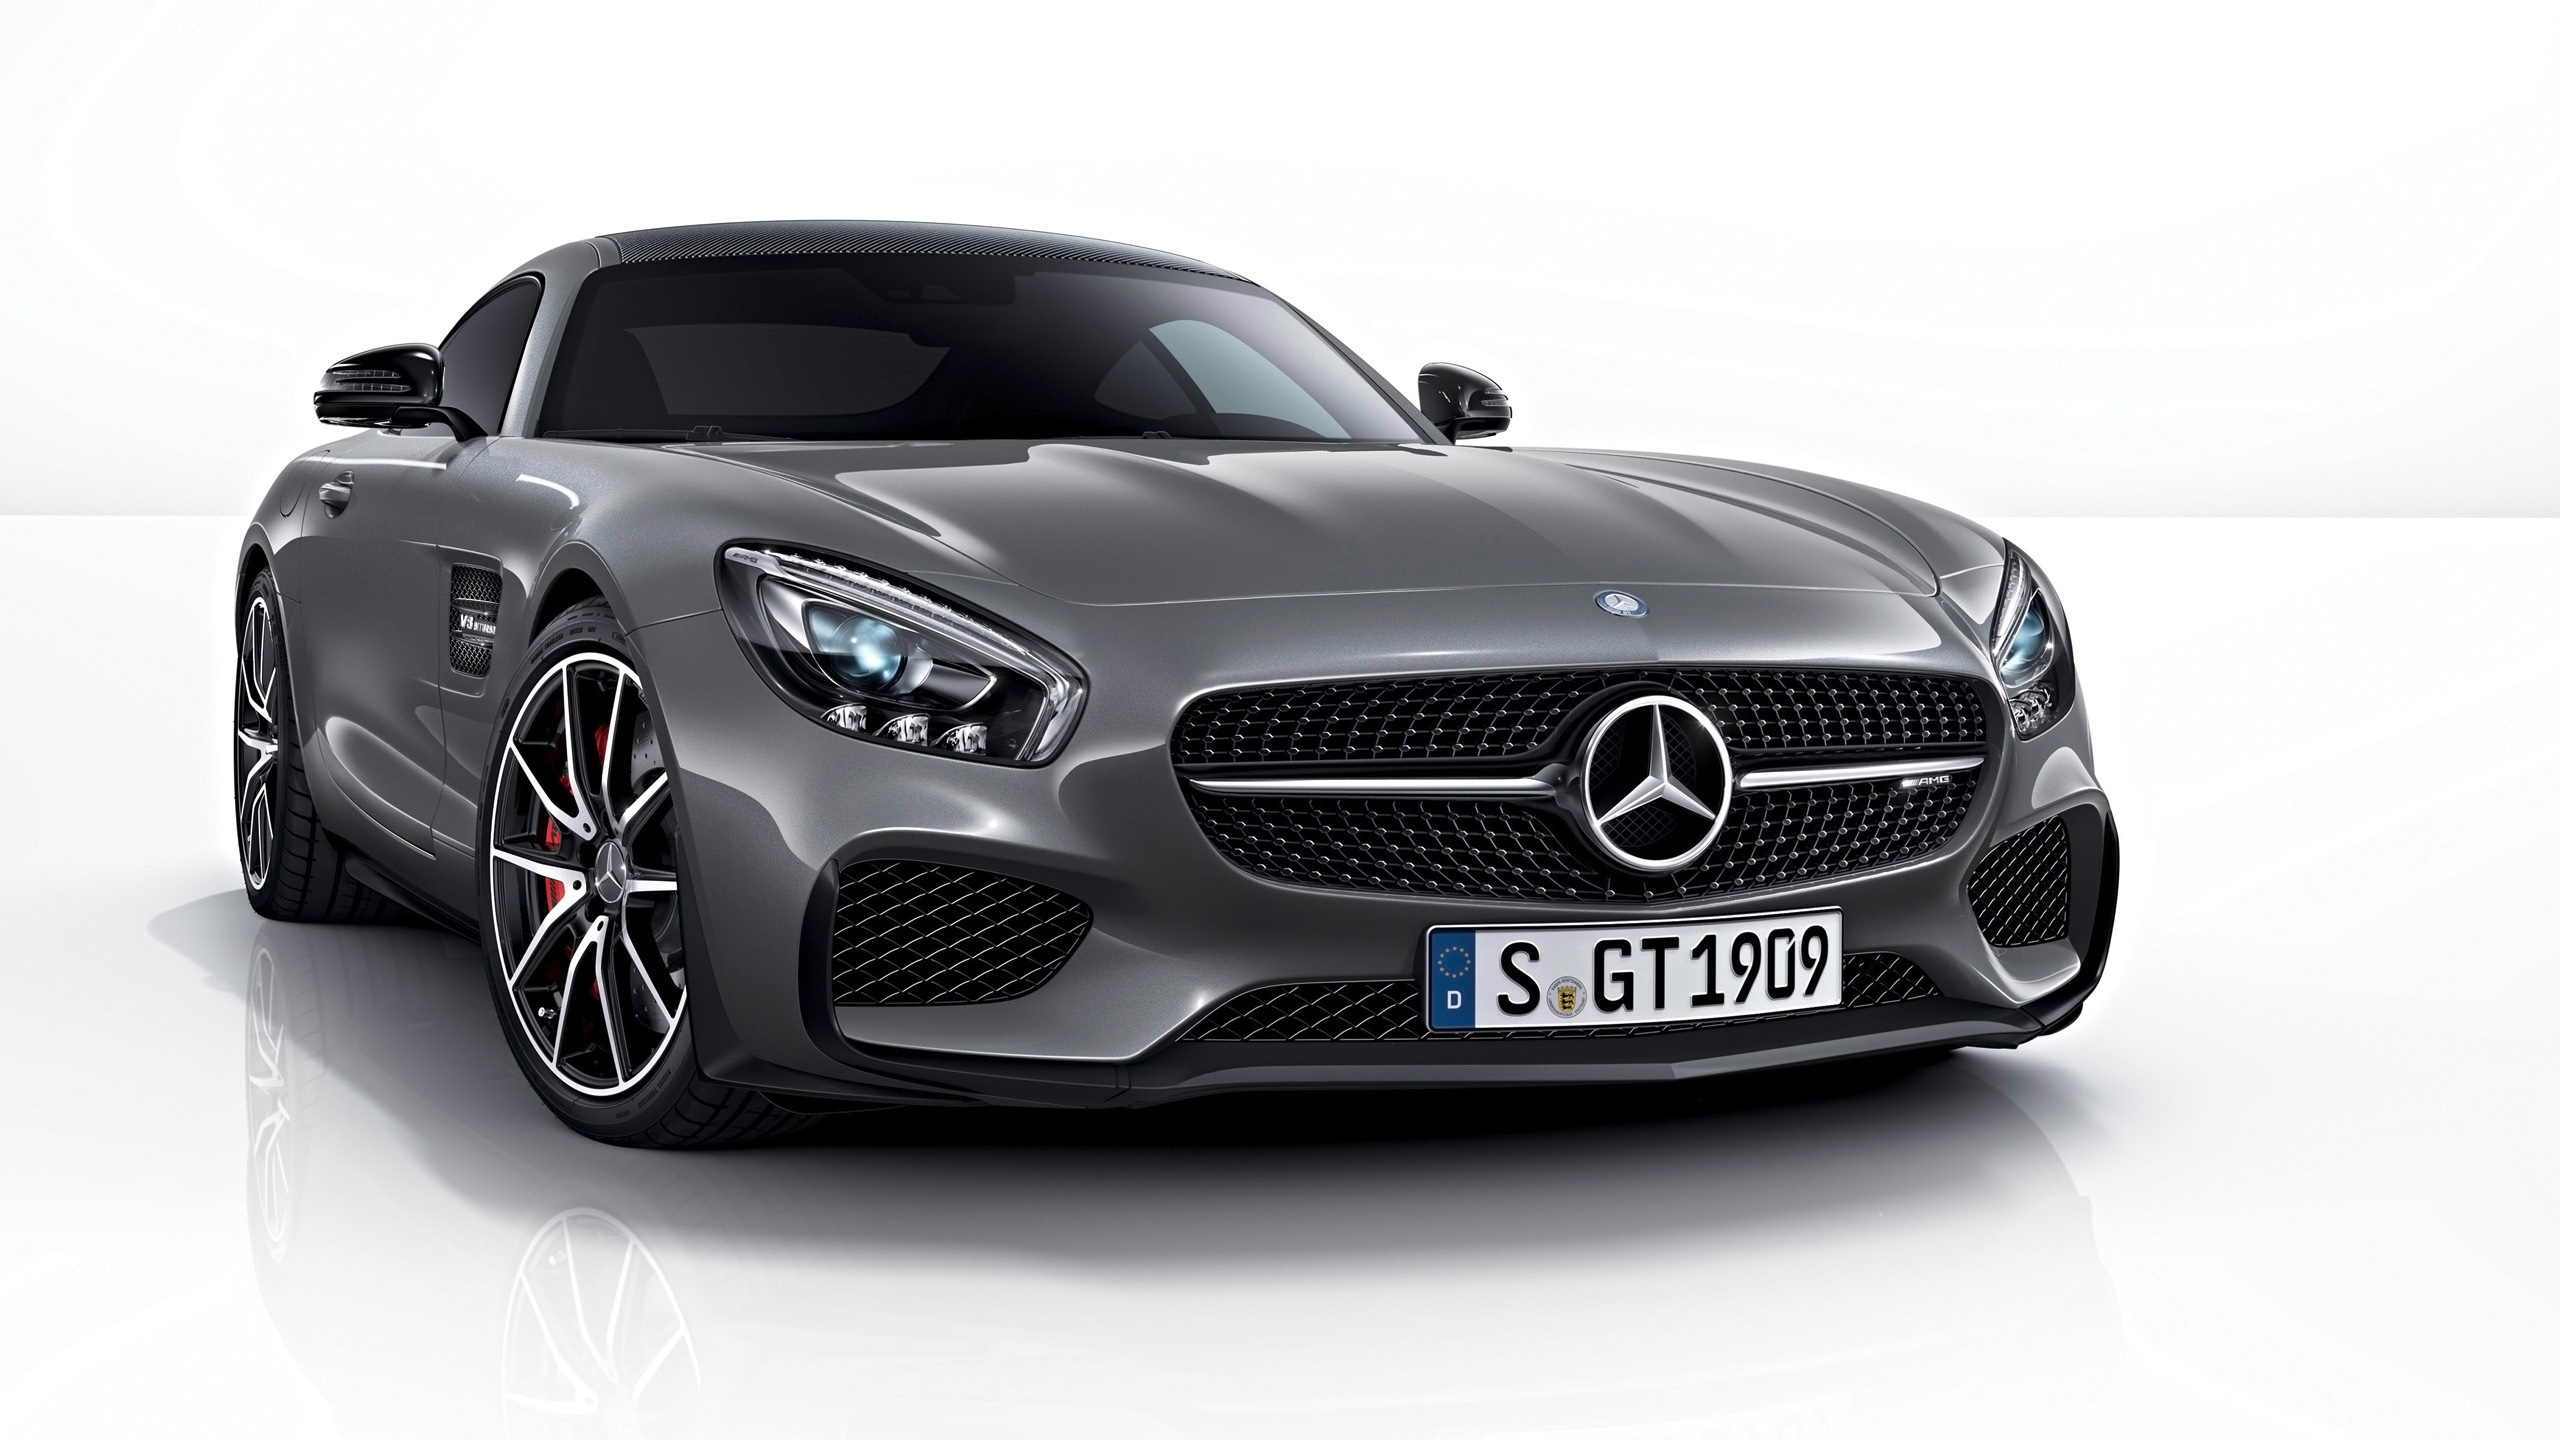 2015 mercedes amg gt s edition wallpaper hd car wallpapers. Black Bedroom Furniture Sets. Home Design Ideas